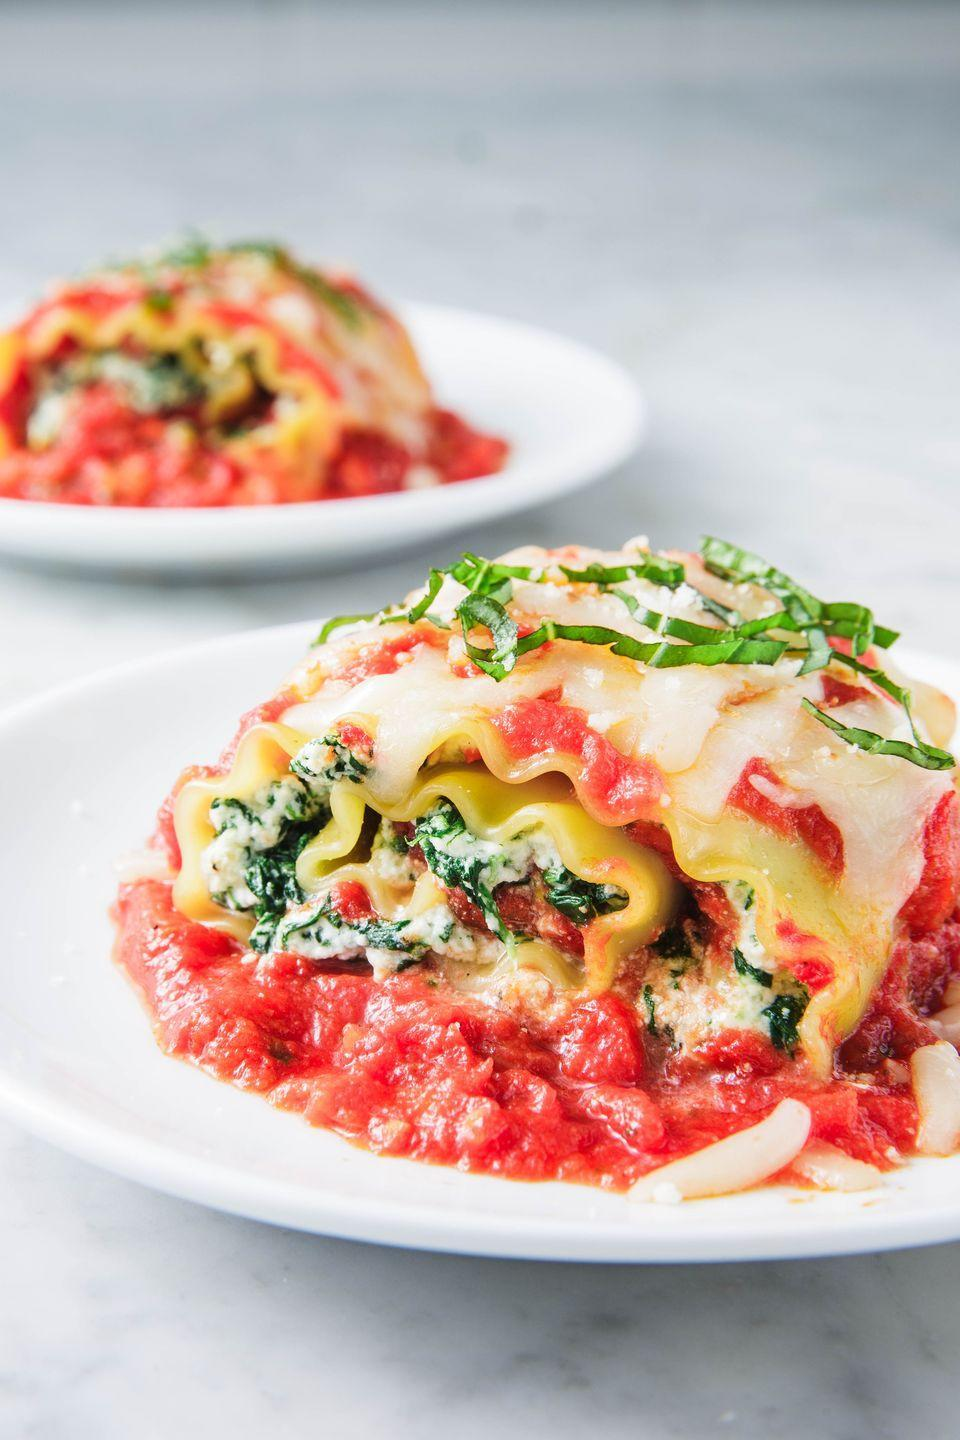 "<p>Feel free to swap in your favorite store-bought marinara. </p><p>Get the recipe from <a href=""https://www.delish.com/cooking/recipe-ideas/a24450106/spinach-lasagna-rolls-recipe/"" rel=""nofollow noopener"" target=""_blank"" data-ylk=""slk:Delish"" class=""link rapid-noclick-resp"">Delish</a>. </p>"